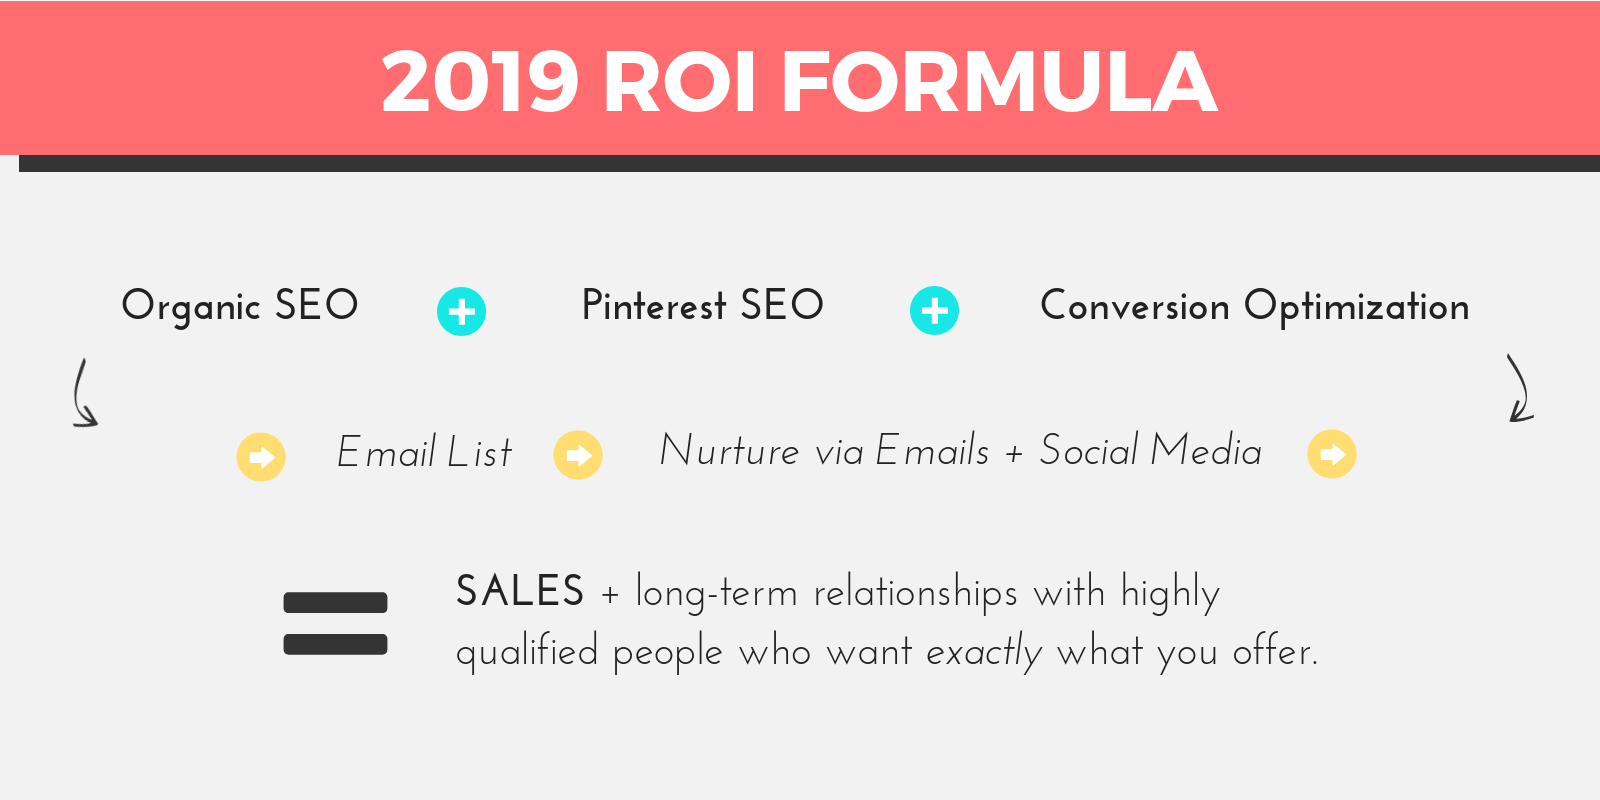 ^^ Get the 'biggest bang for your buck' with this 2019 ROI Formula ^^